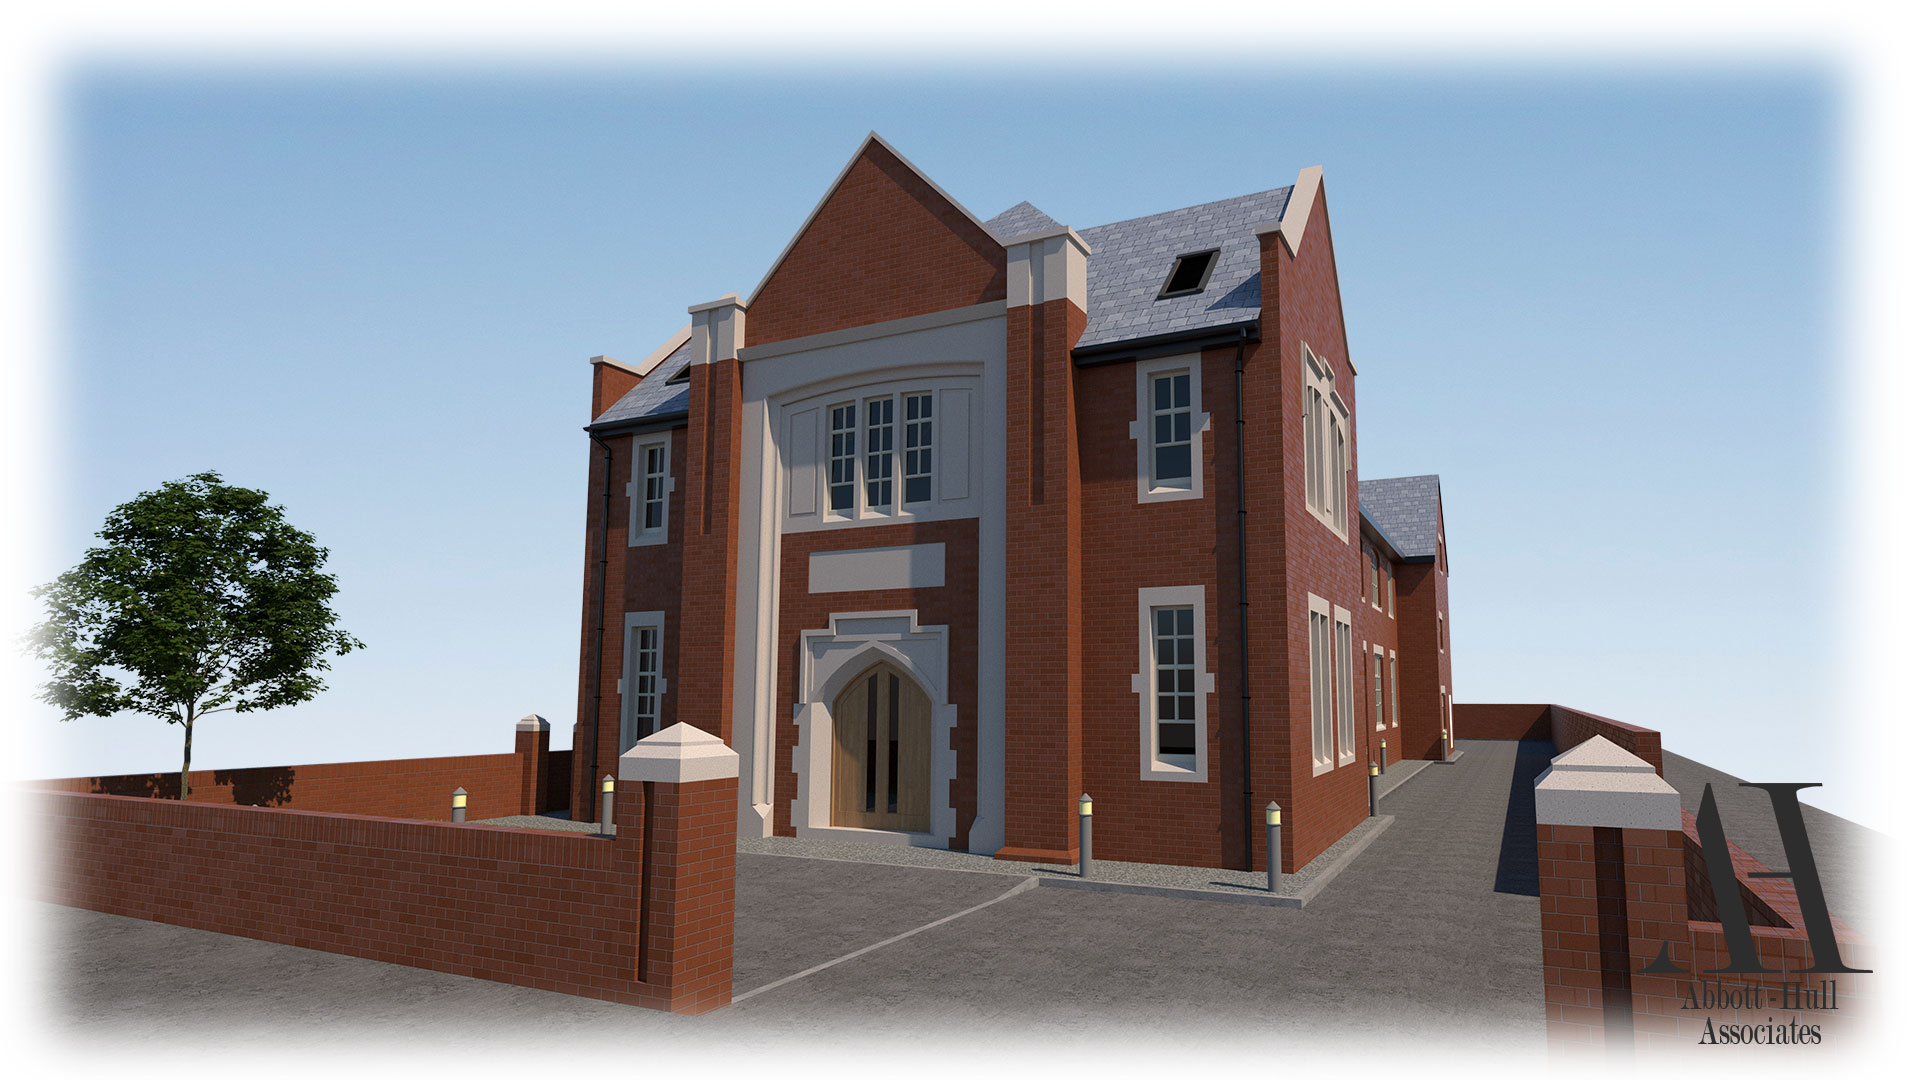 Parochial Hall, Park Road, Blackpool - Proposed Visual 1